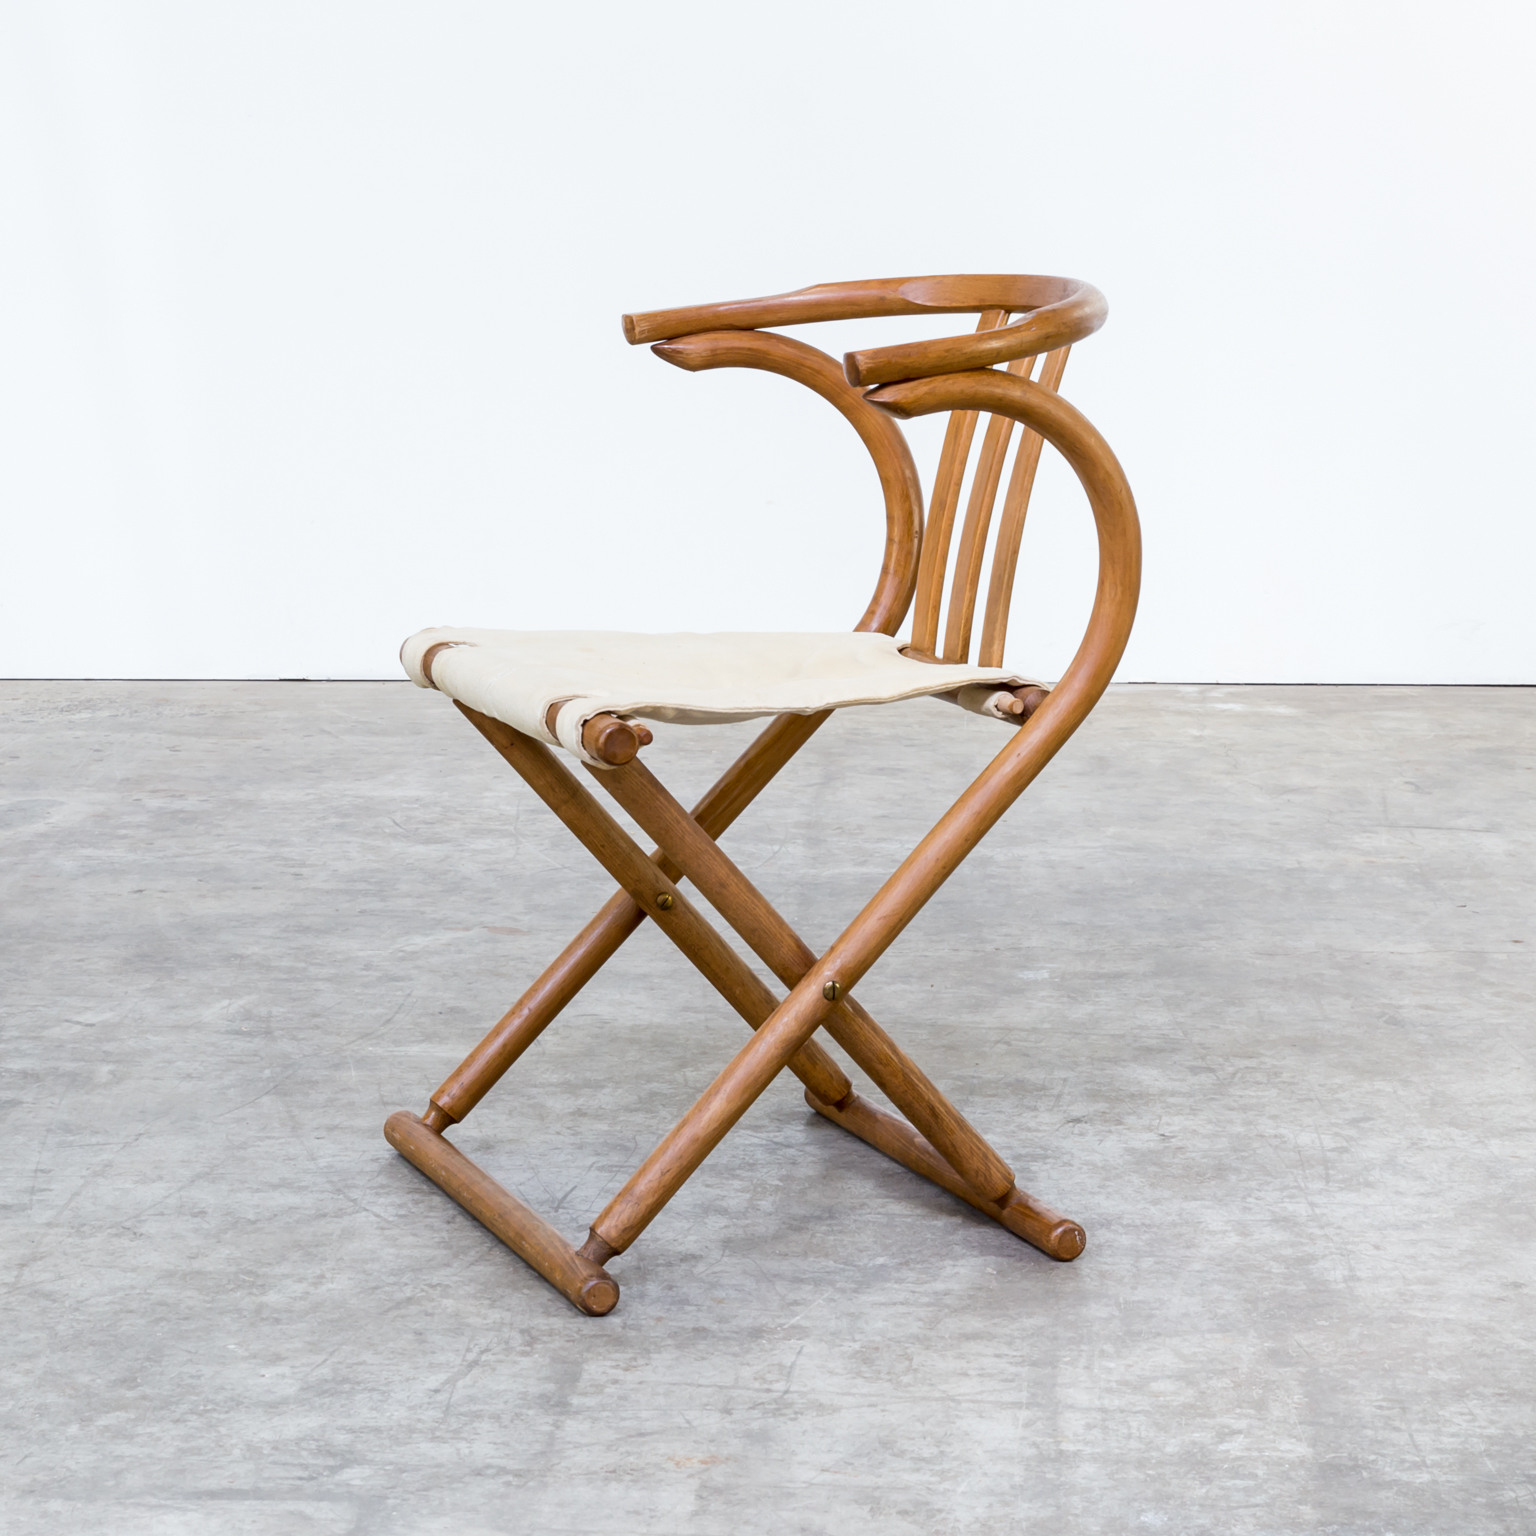 Designer Folding Chair Thonet Bentwood Folding Chair Set 4 Barbmama : set of 4 folding chairs - Cheerinfomania.Com